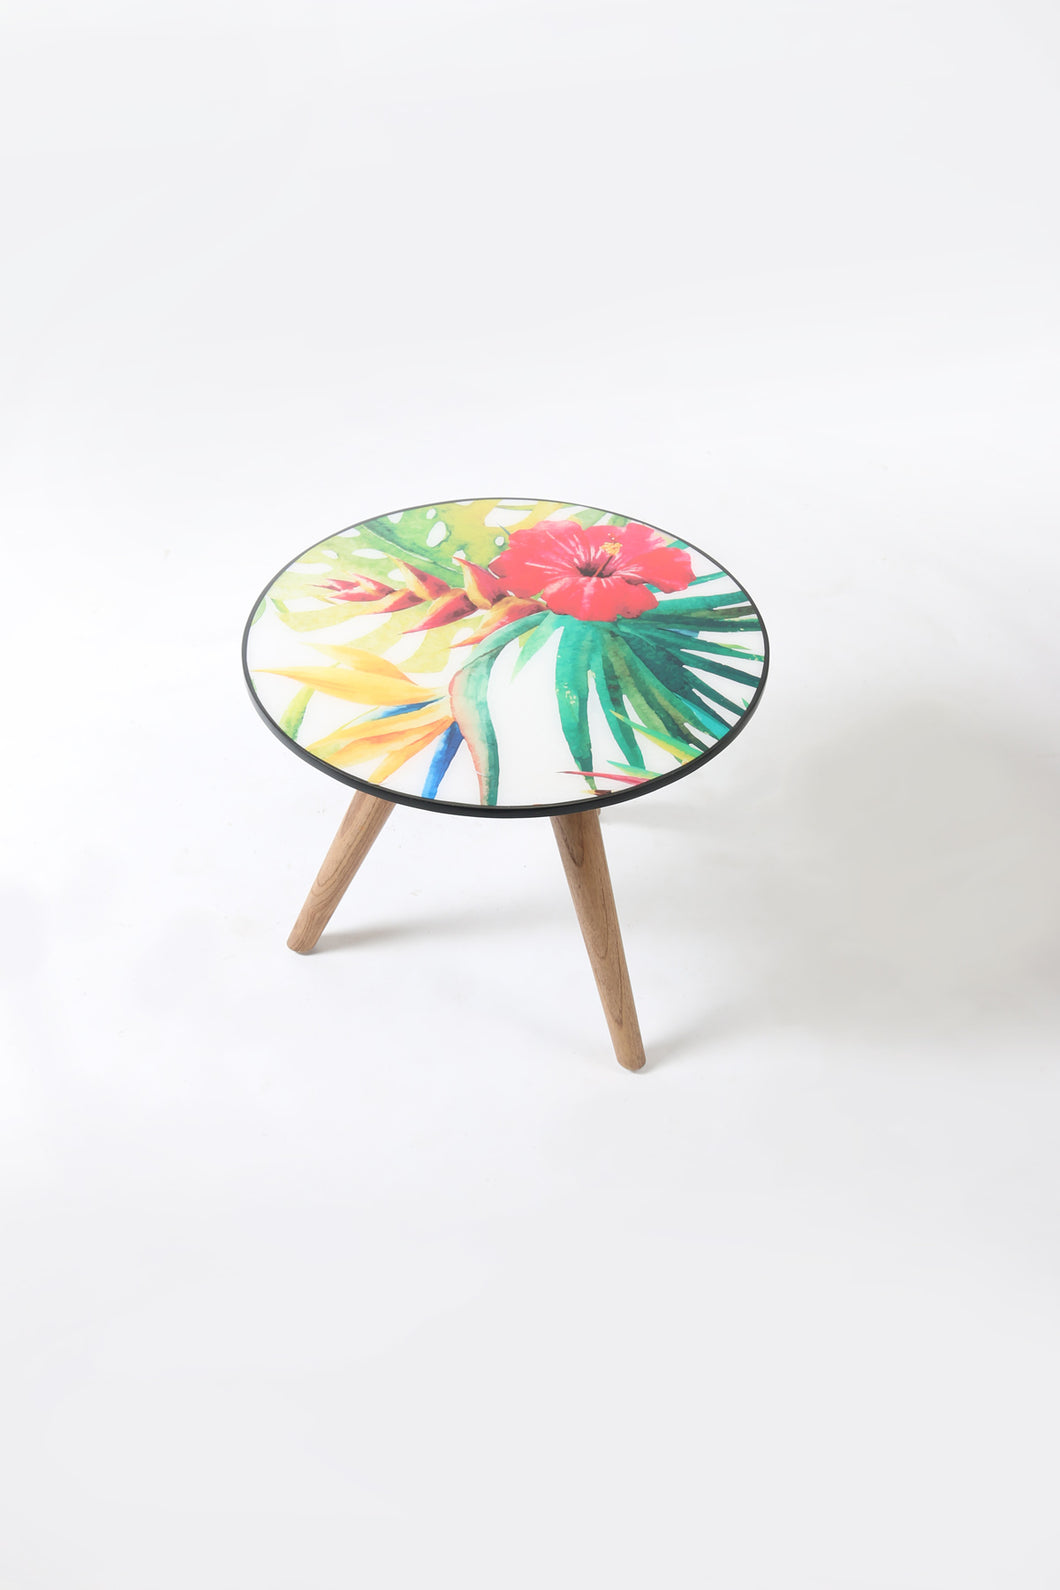 Hibiscus Wood and Resin Coffee Table with Three Legs